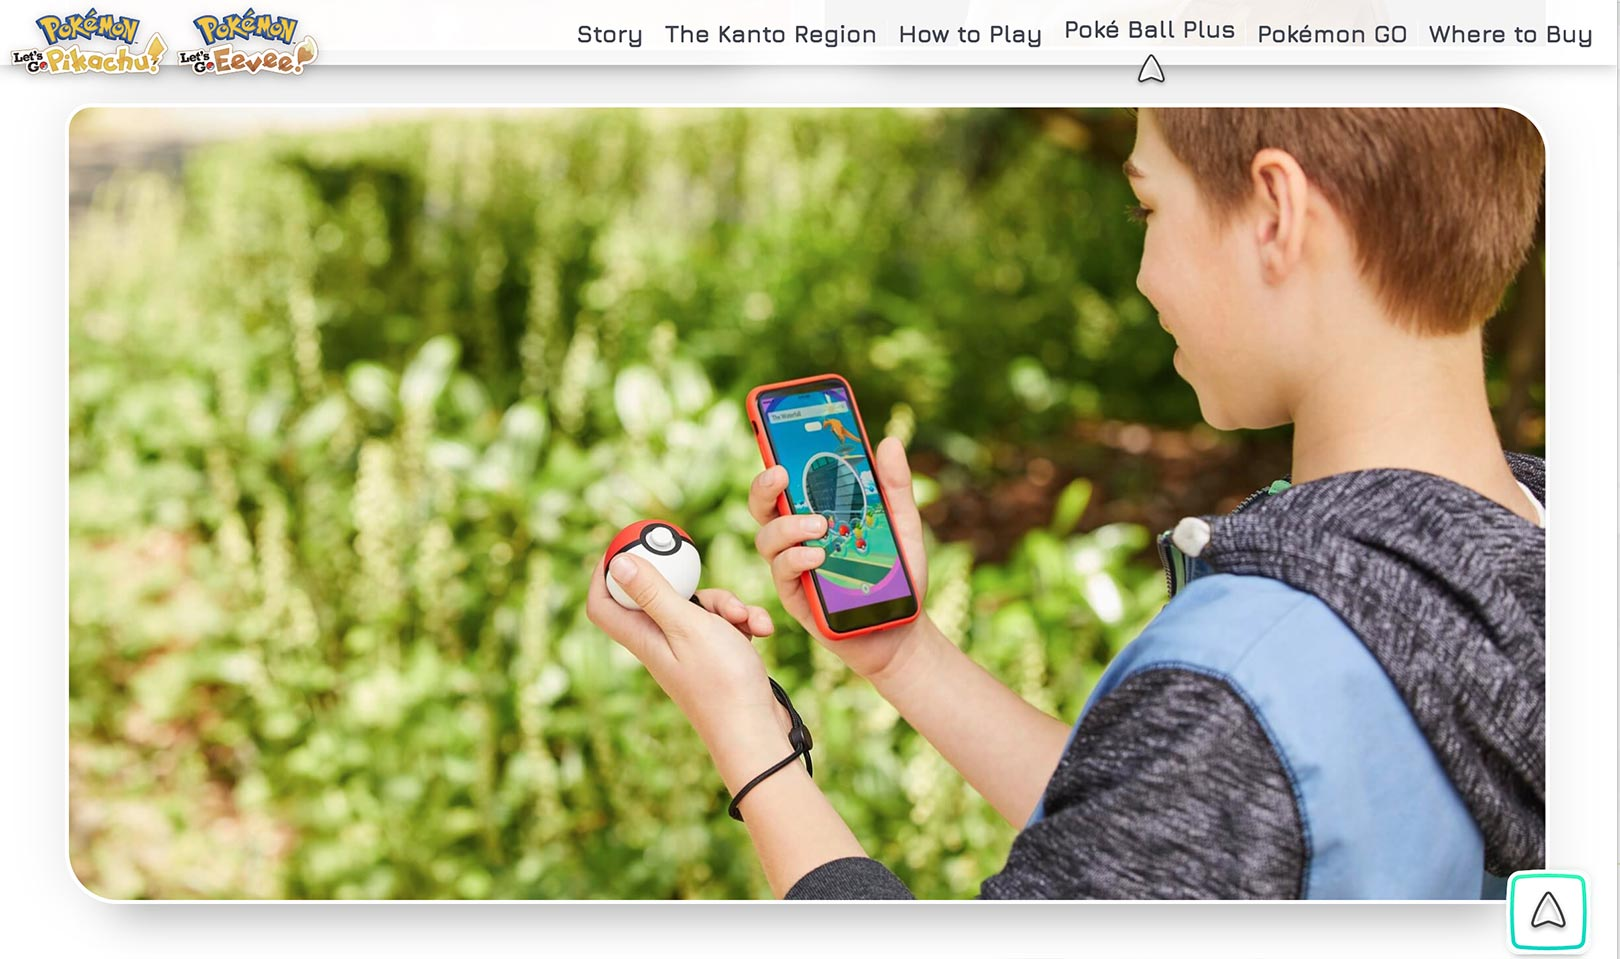 nintendo-pokemon-tearsheet-web1